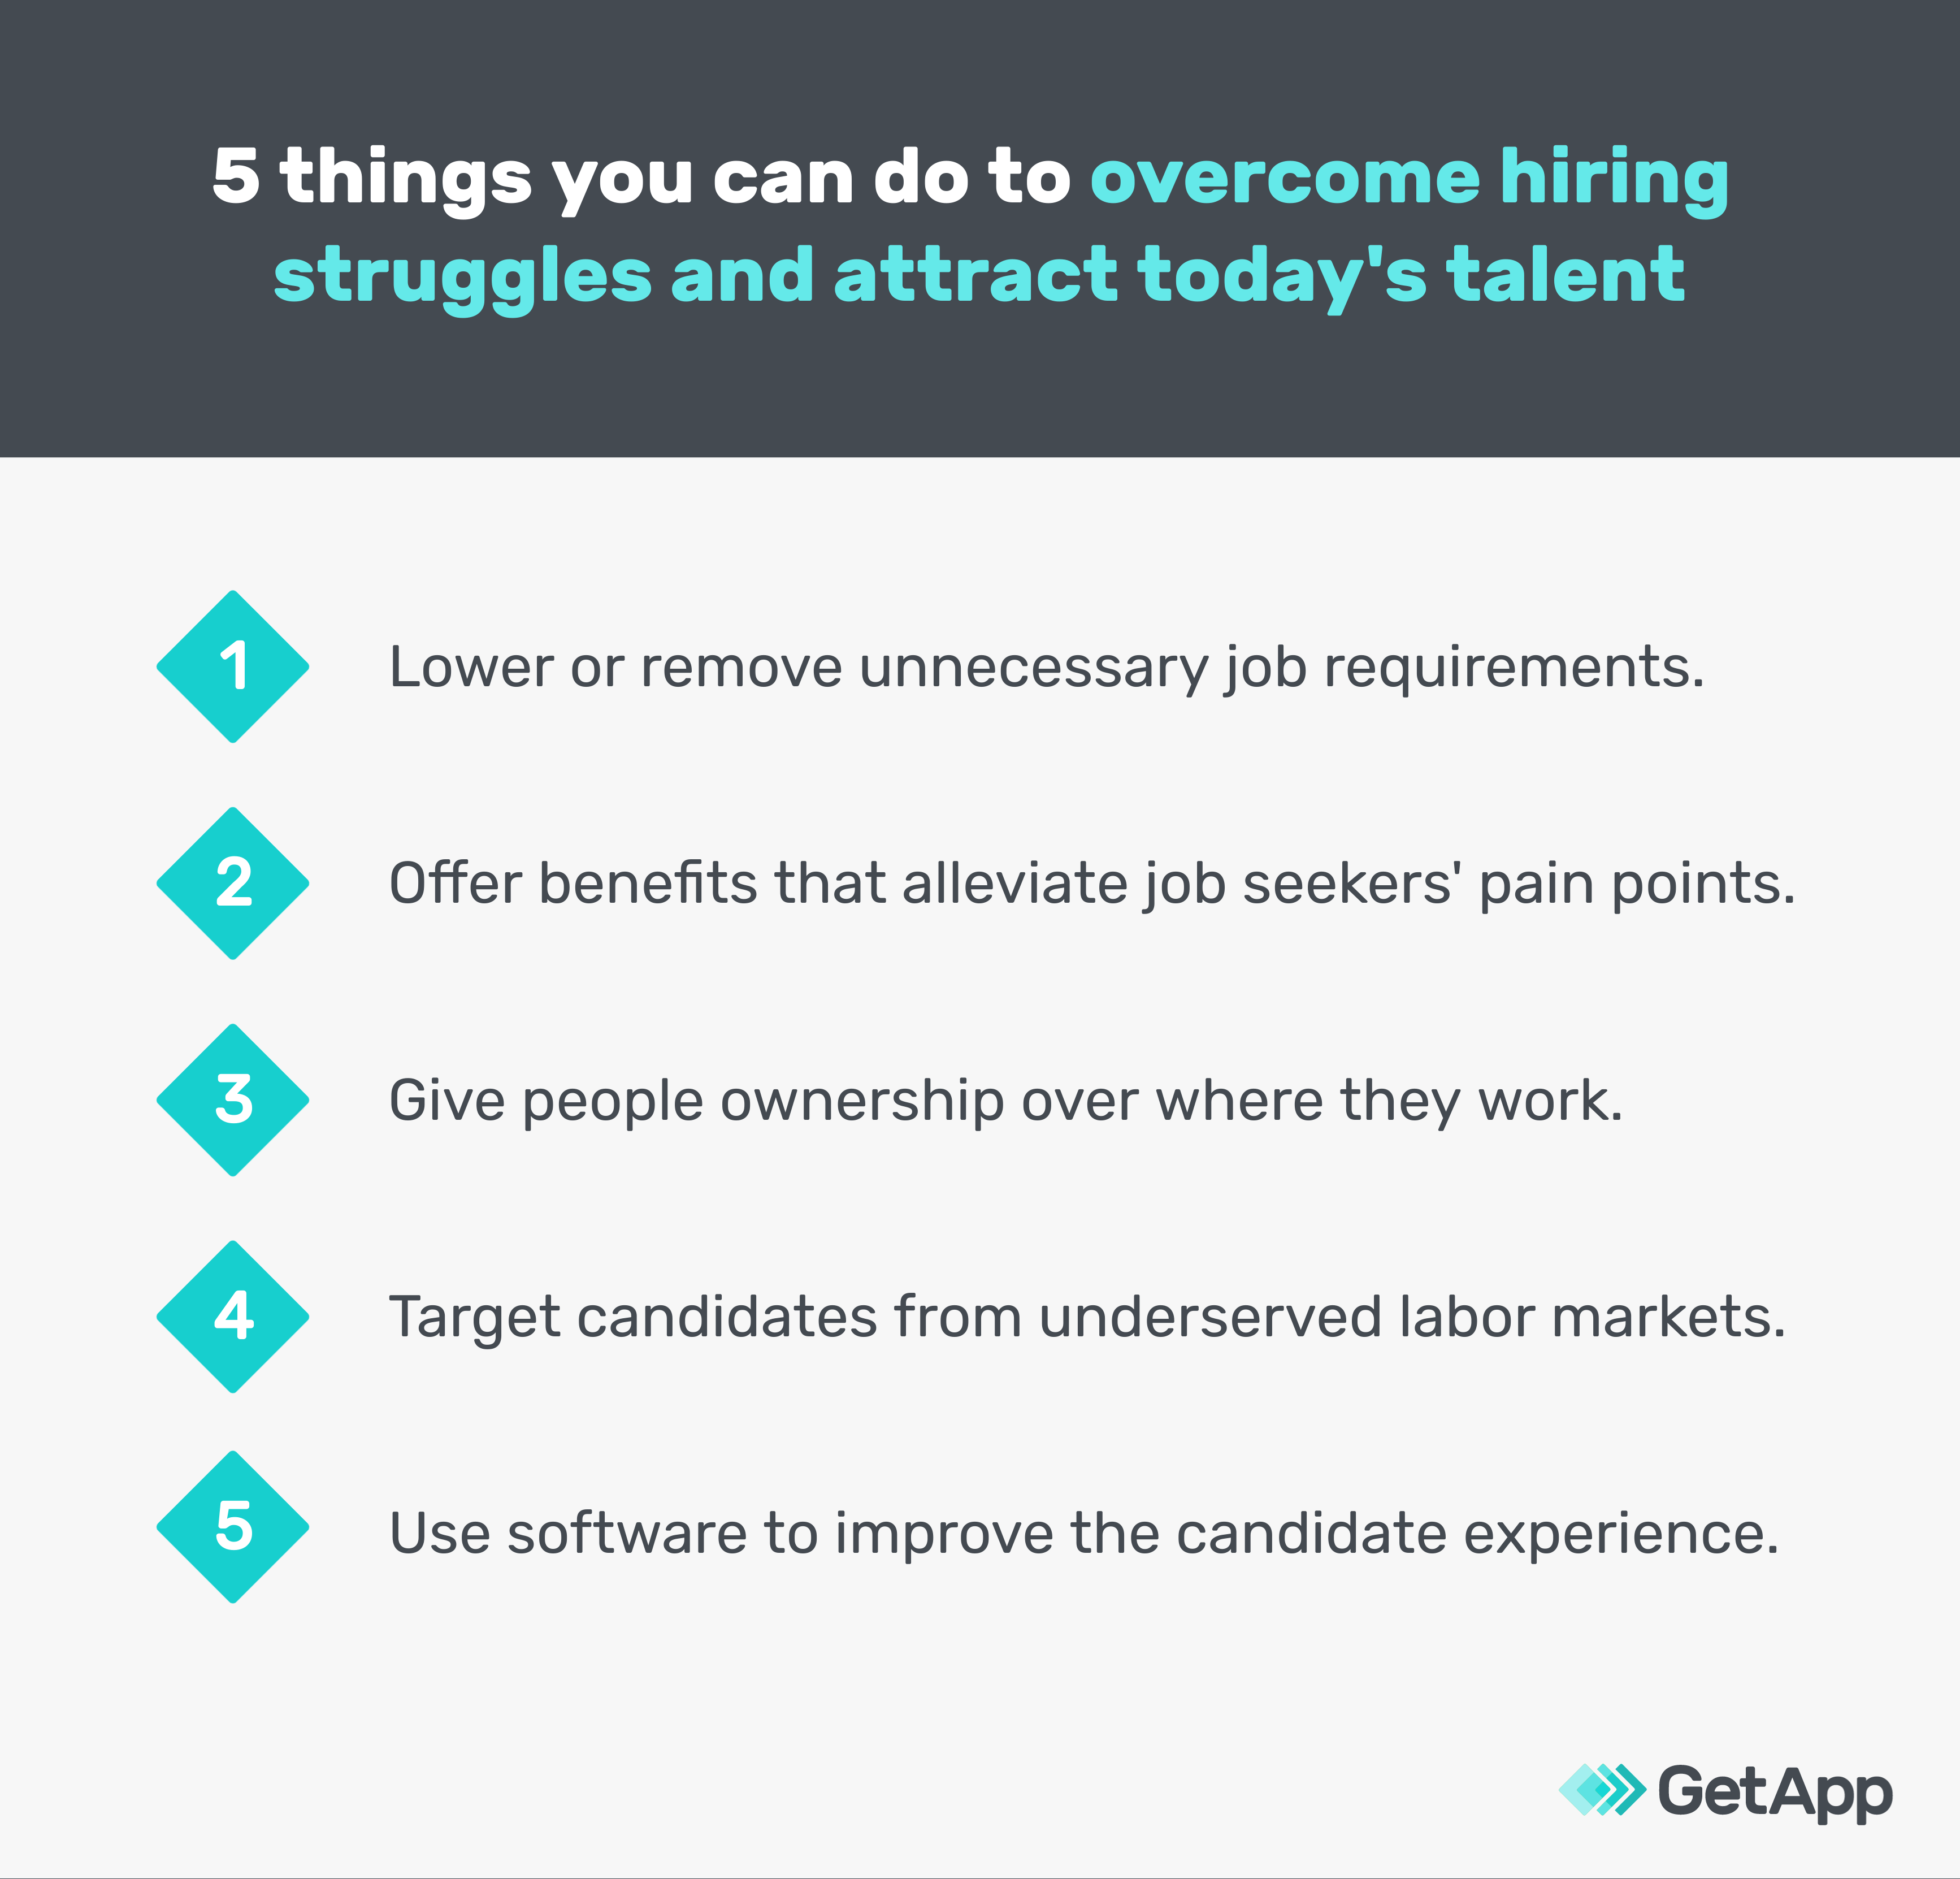 5 things you can do to overcome hiring struggles and attract today's talent